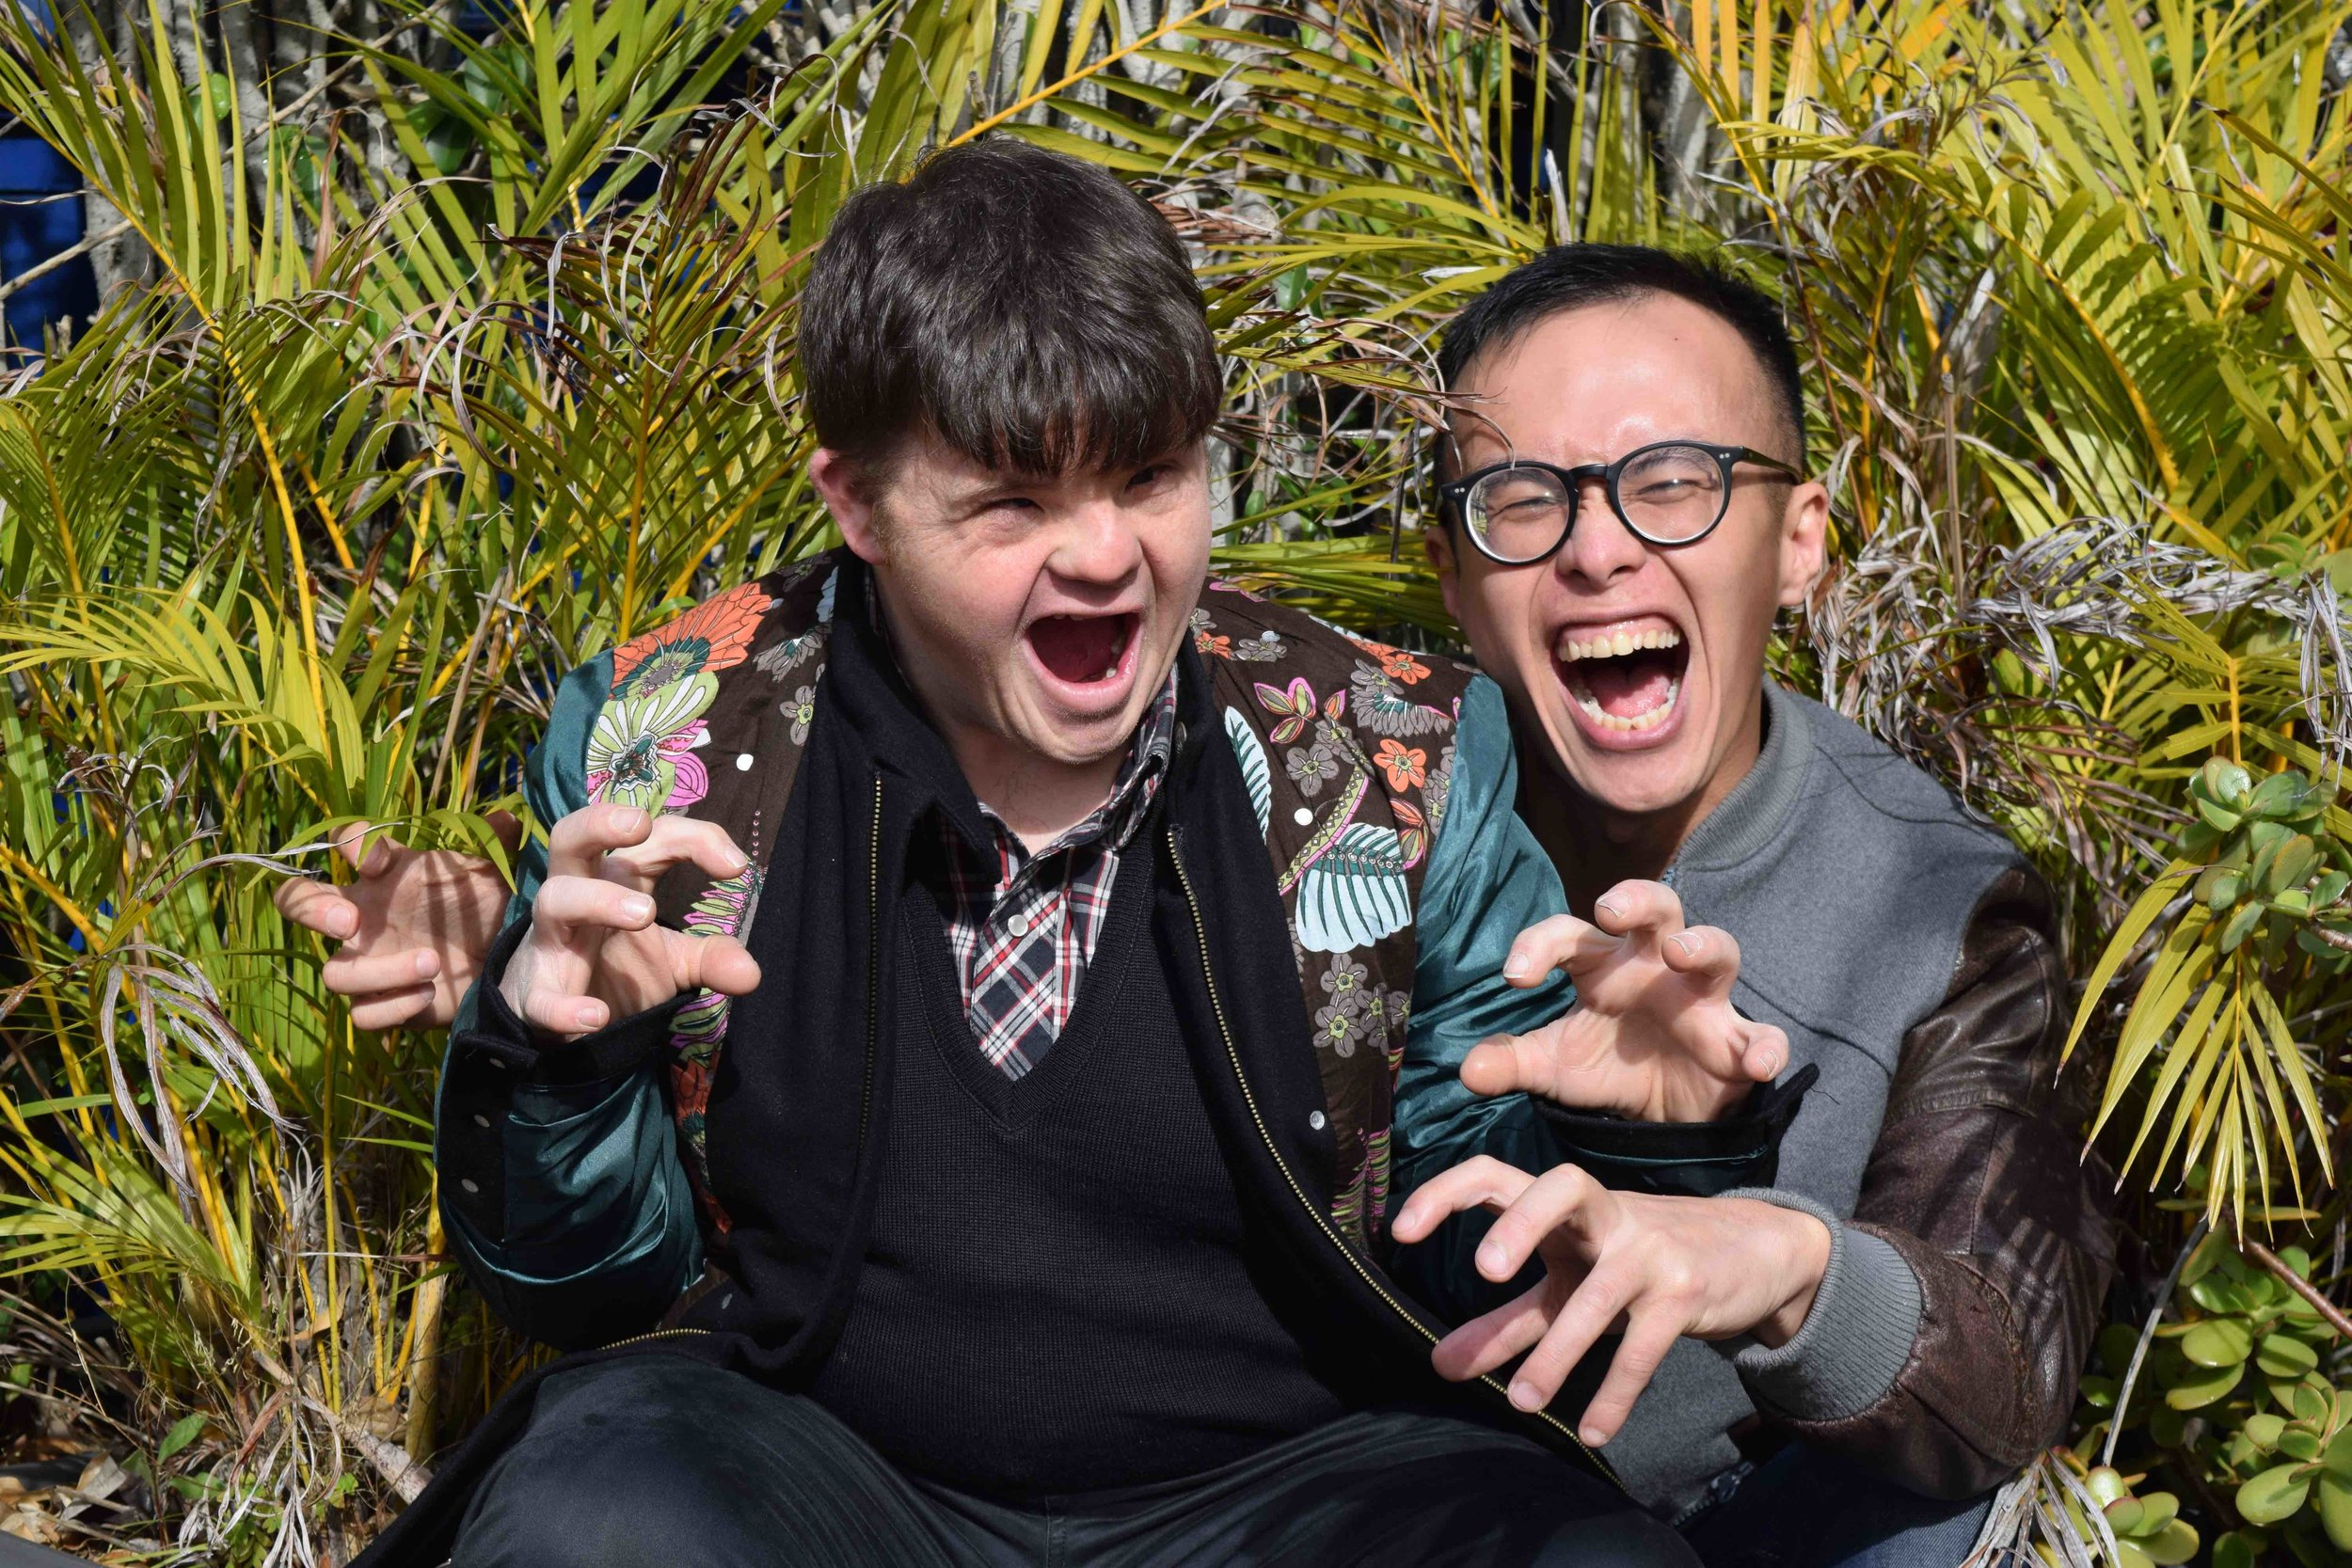 The Wild Things - James Nguyen & Digby Webster Photo Credit: Sandra Winkworth